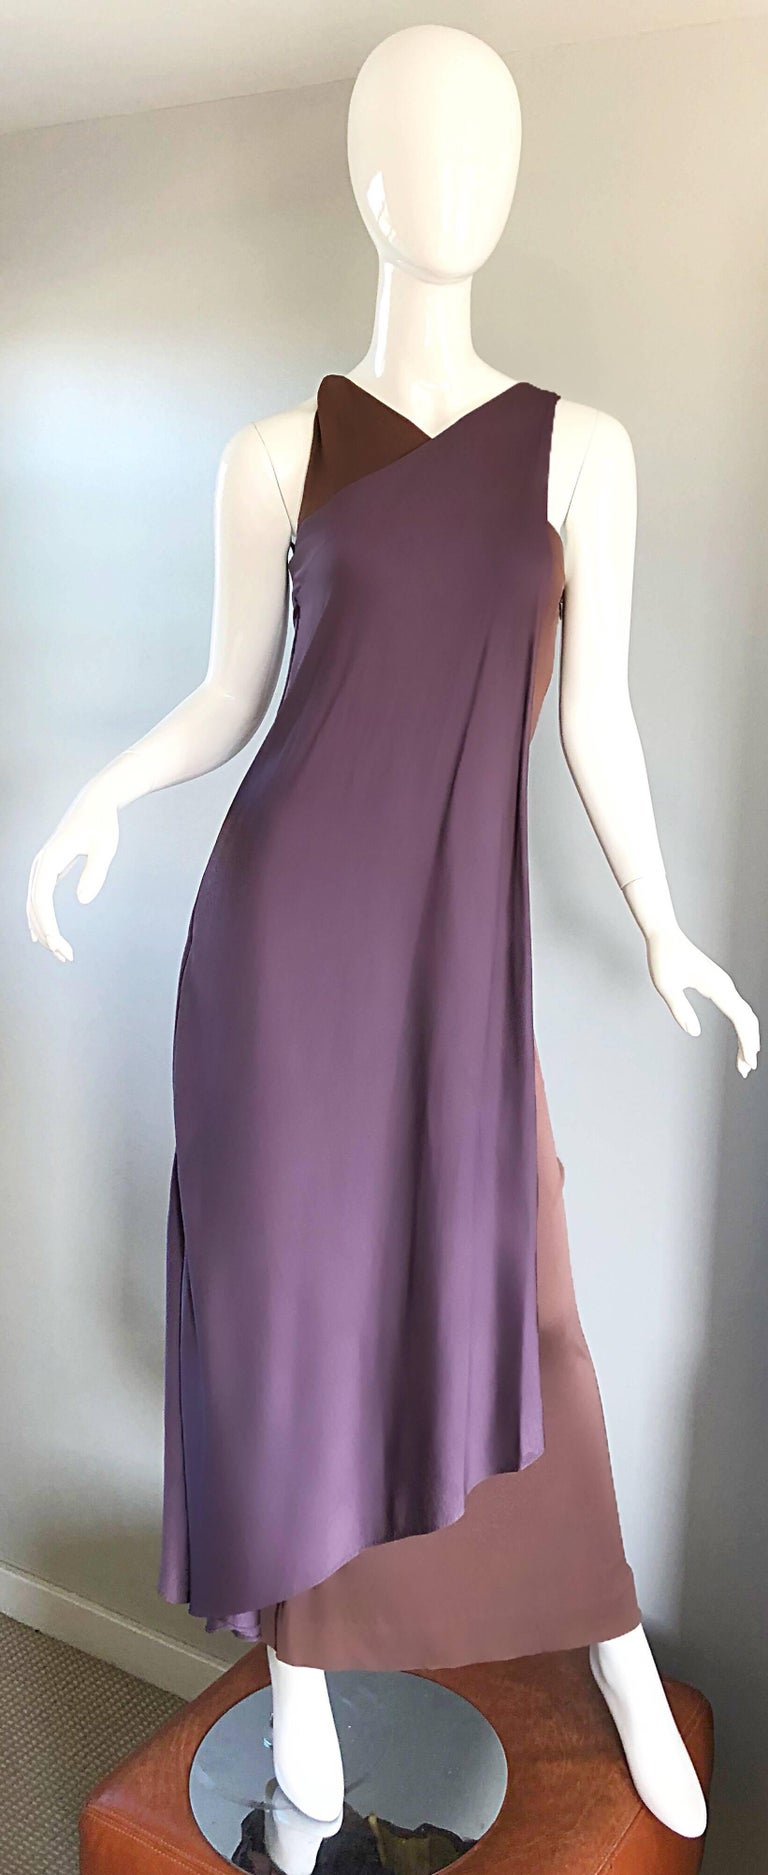 Women's Vintage Bill Blass 1970s Purple + Brown Grecian Inspired Silk Jersey Belted Gown For Sale